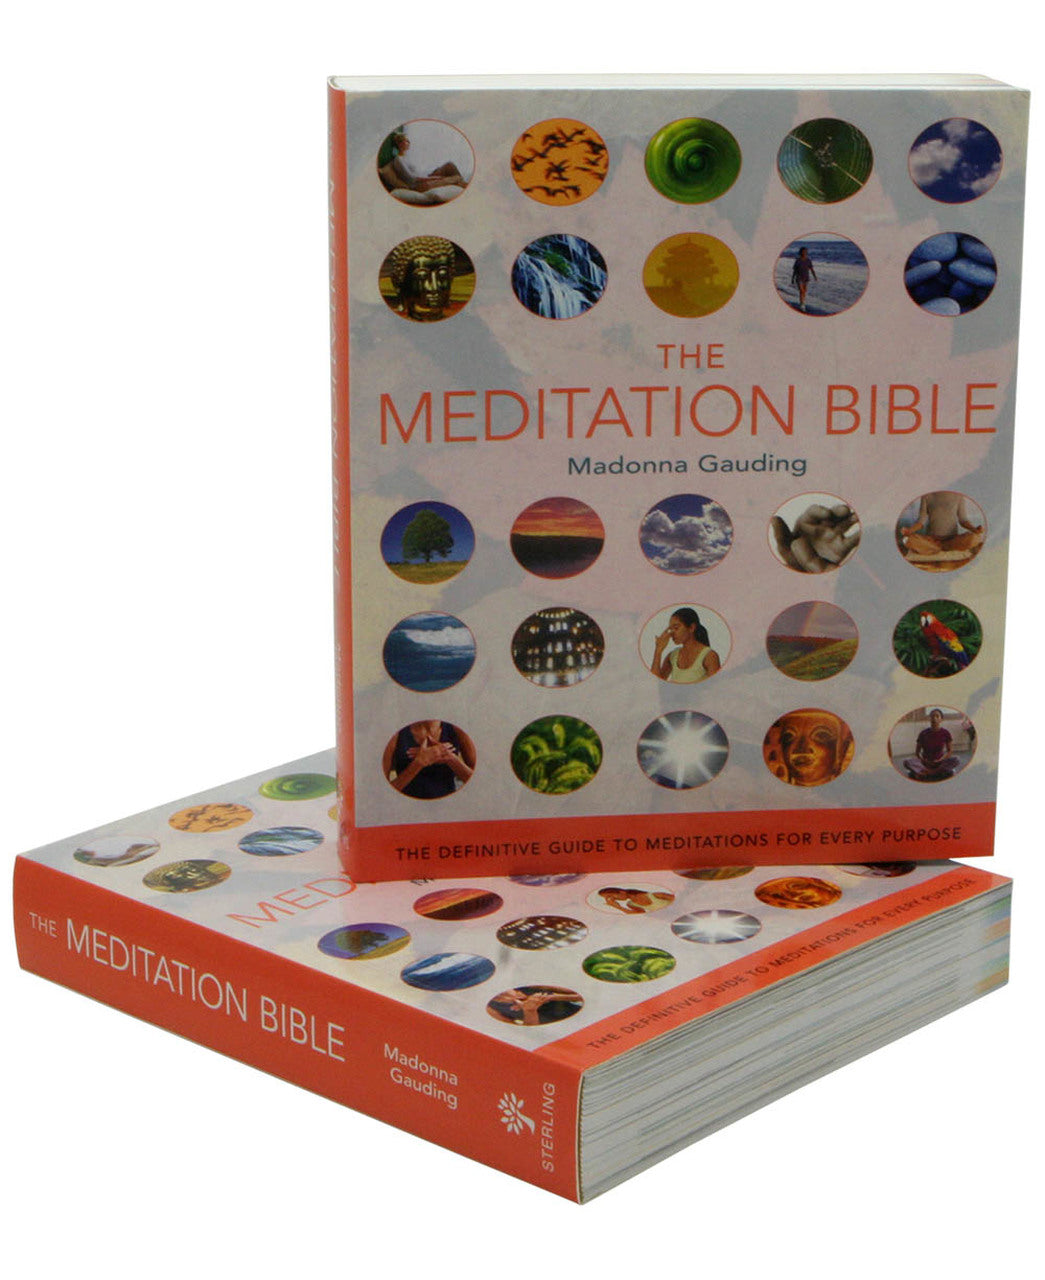 The Meditation Bible (Madonna Gaulding)